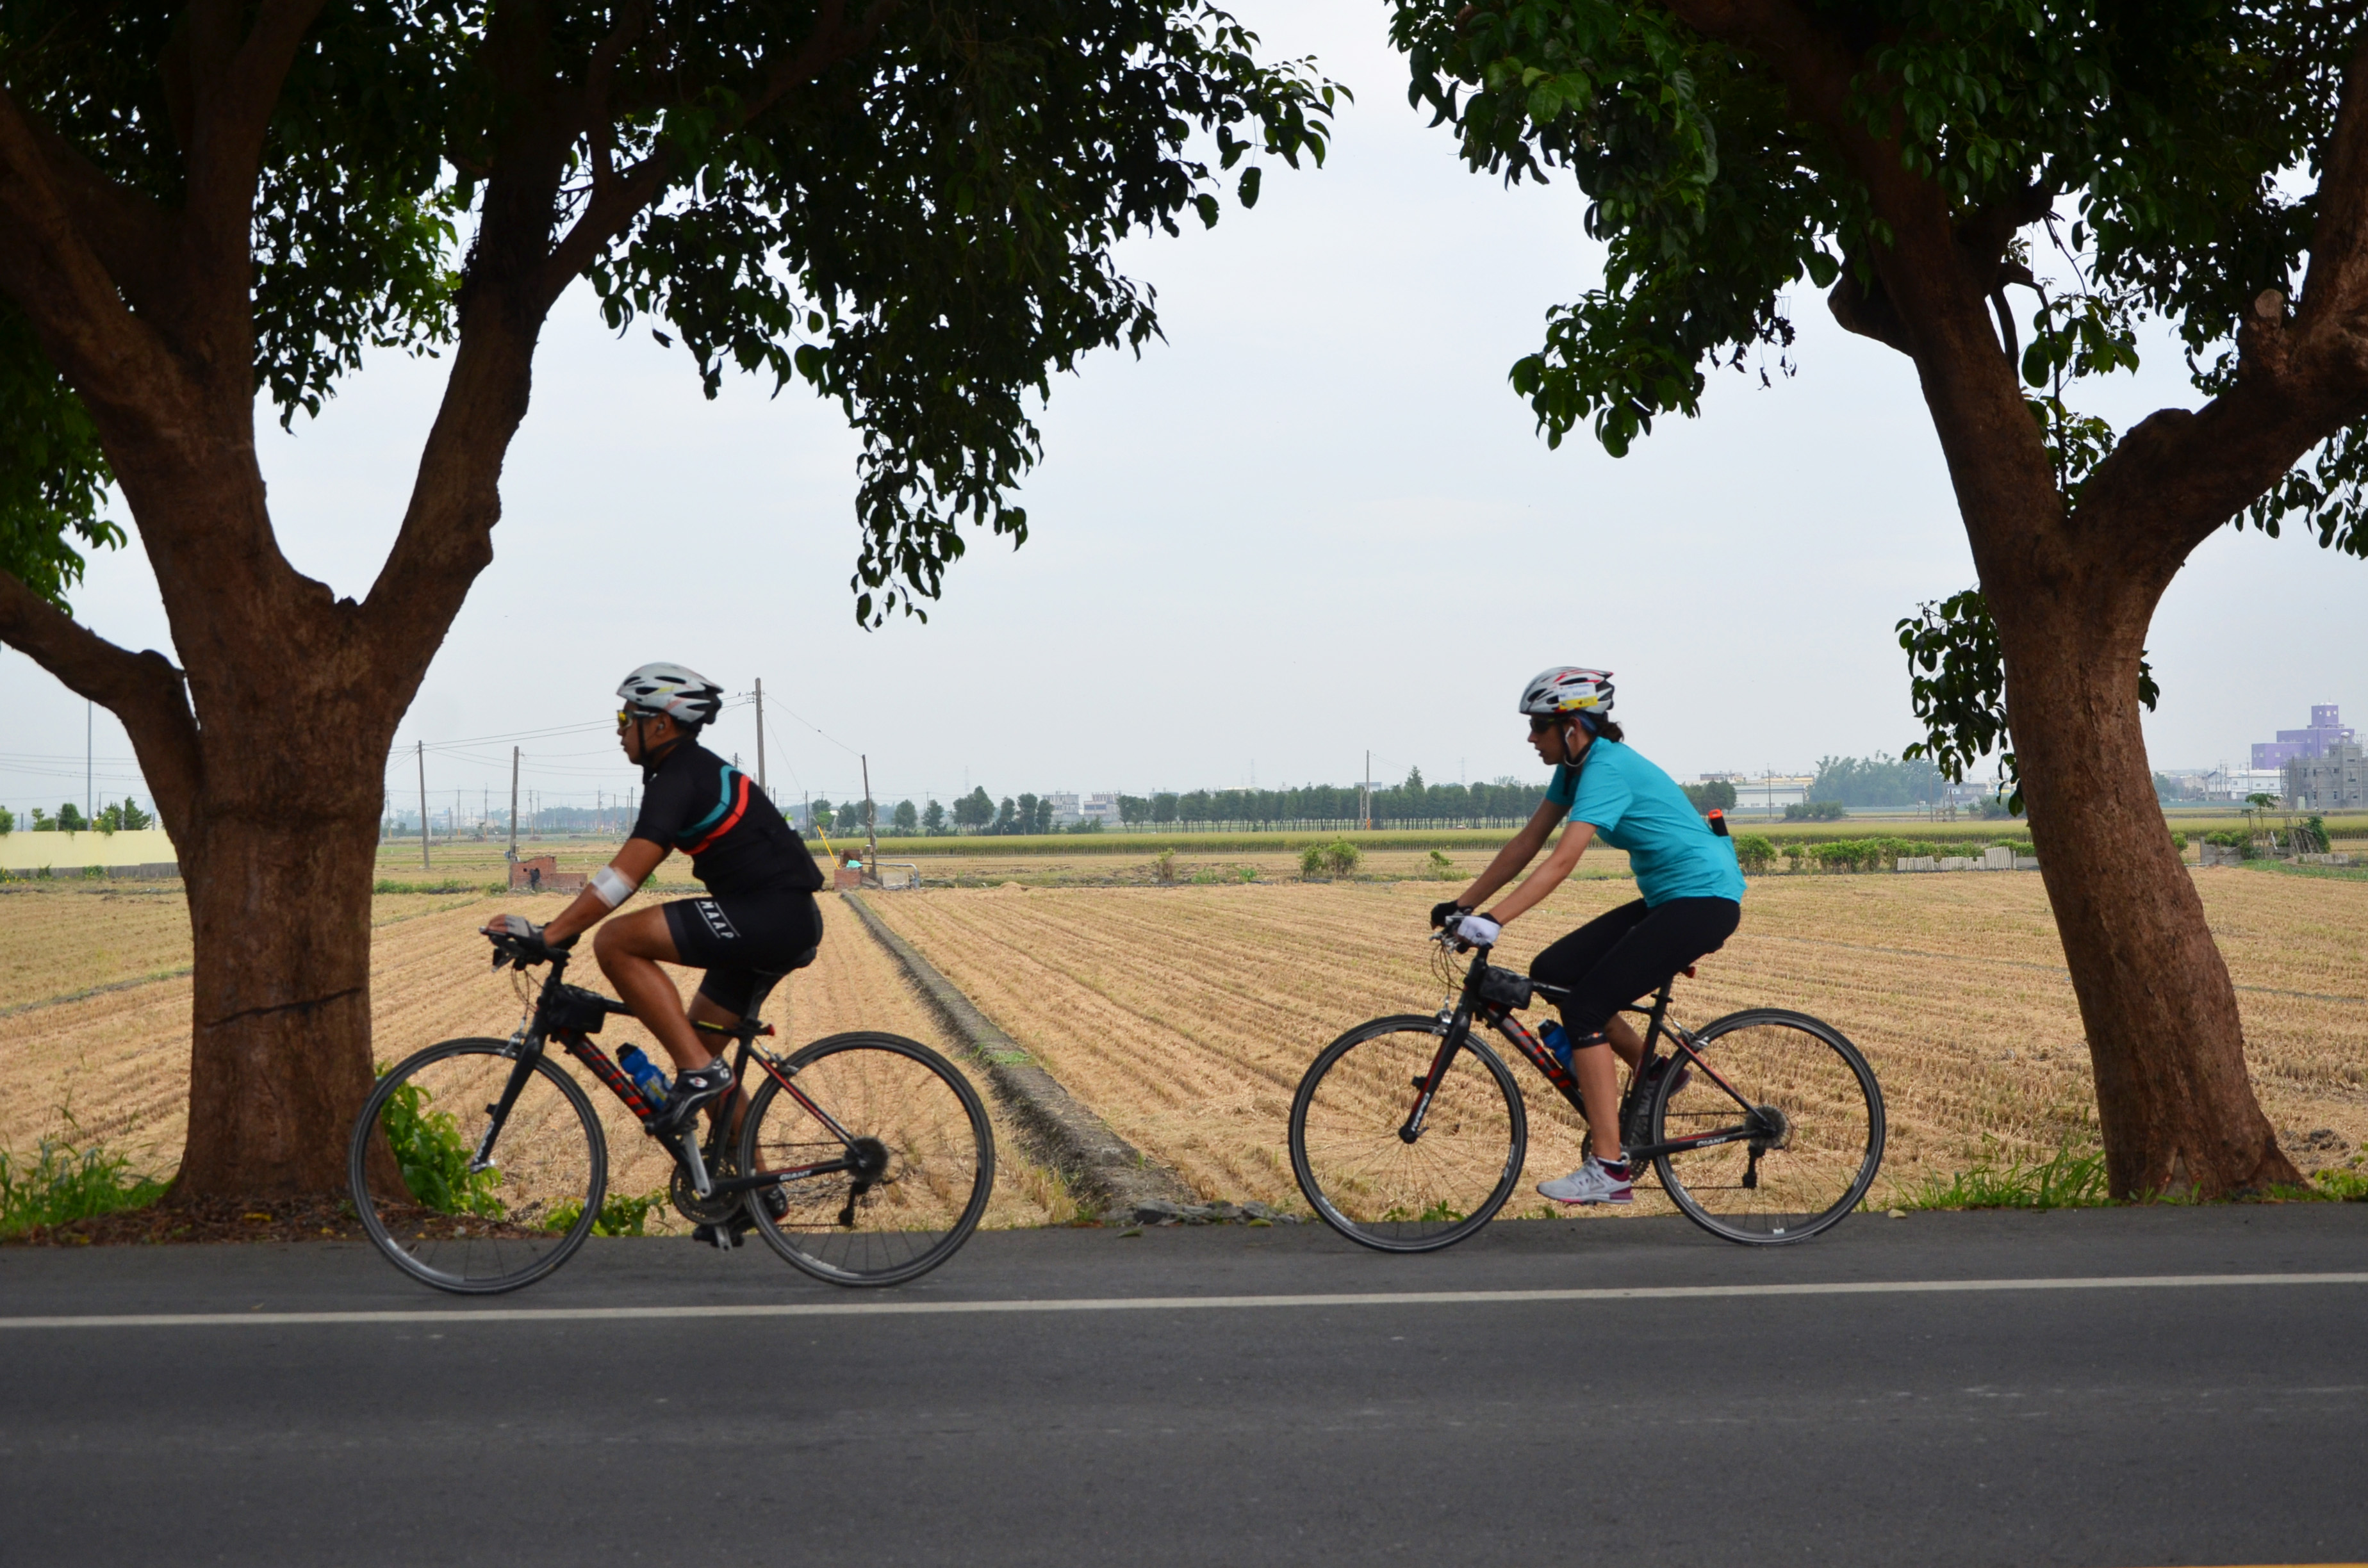 campagne-taiwan-velo-copie